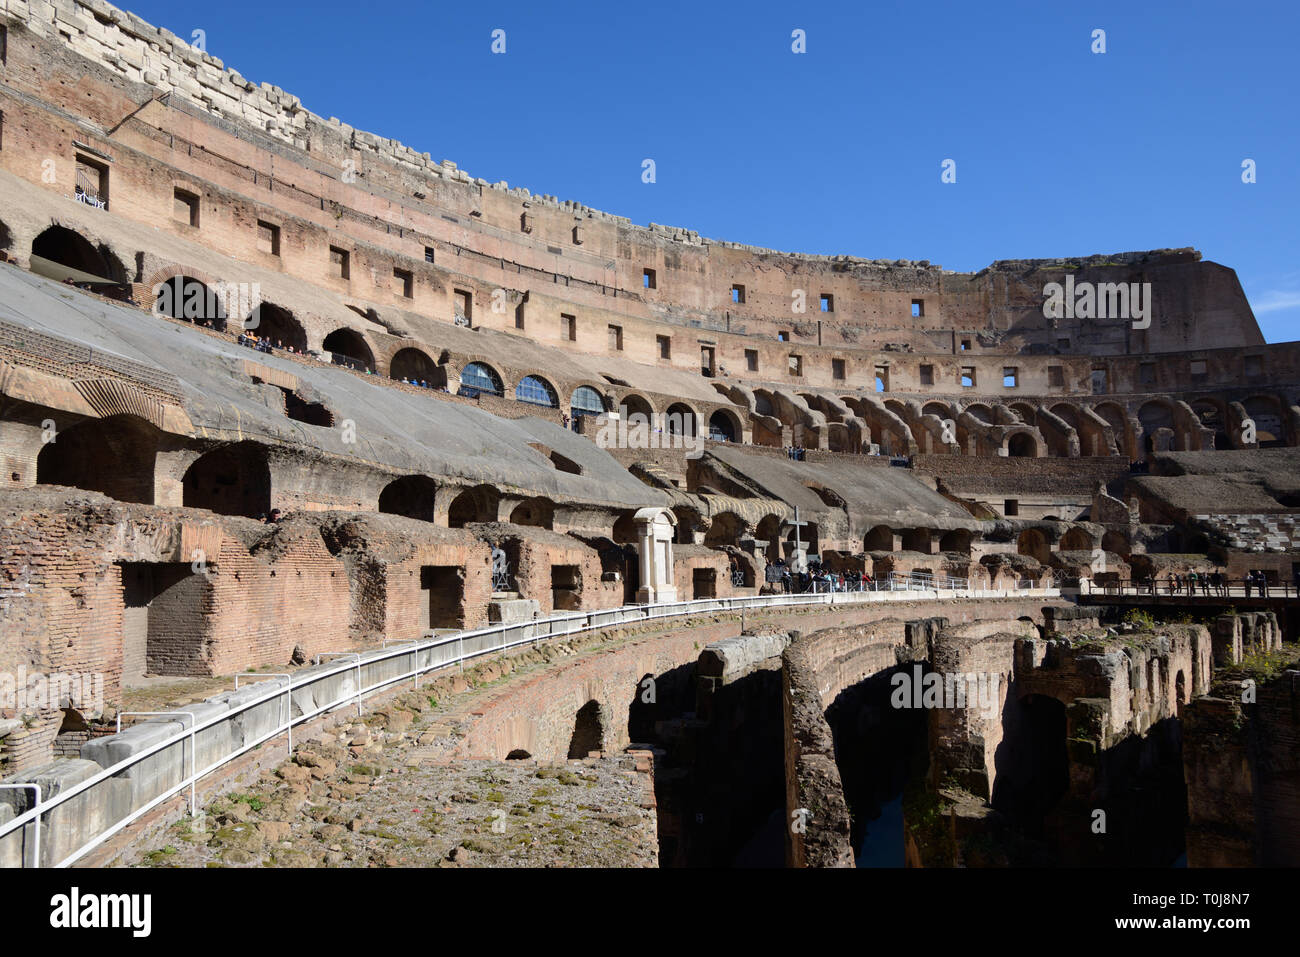 Interior with Seating of the Colosseum, or Coliseum, or Flavian Amphitheatre (70-80AD) Roman Monument, Rome, Italy - Stock Image